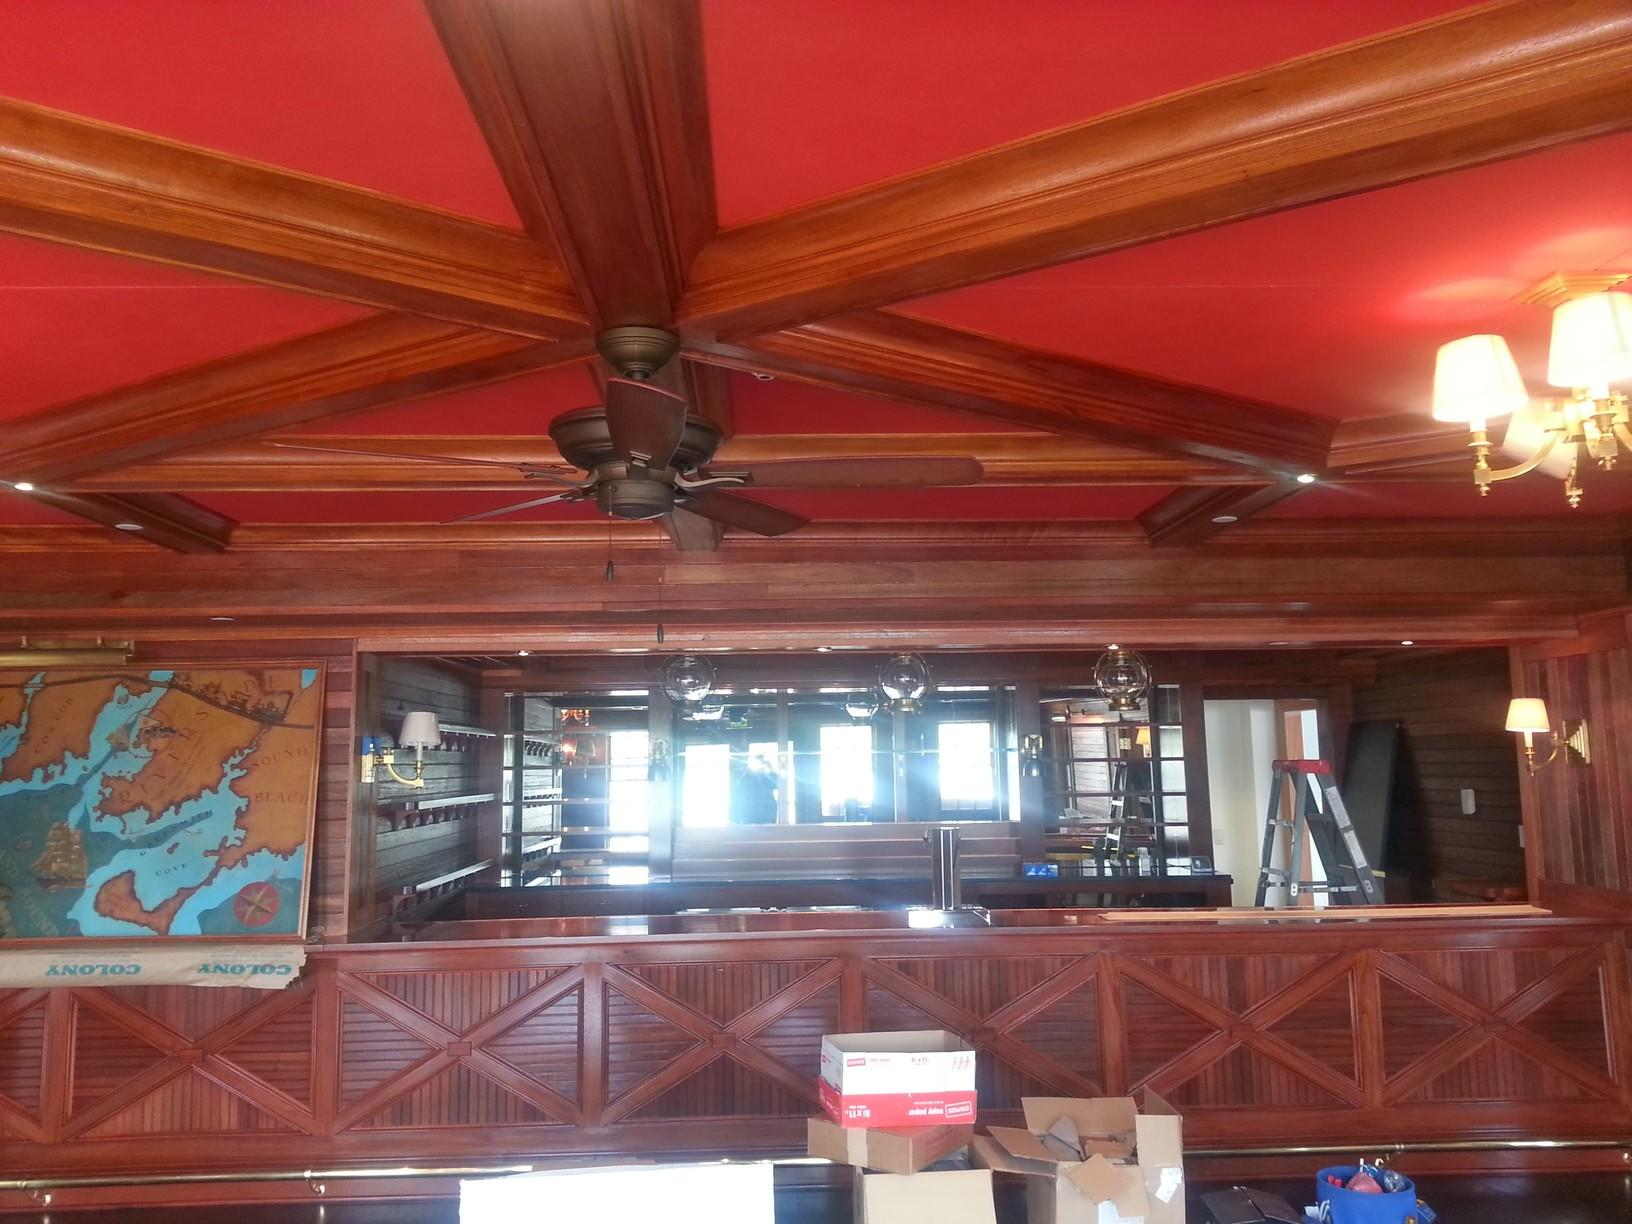 Riverside Yacht Club Ceiling Stained in Greenwich CT - After Photo